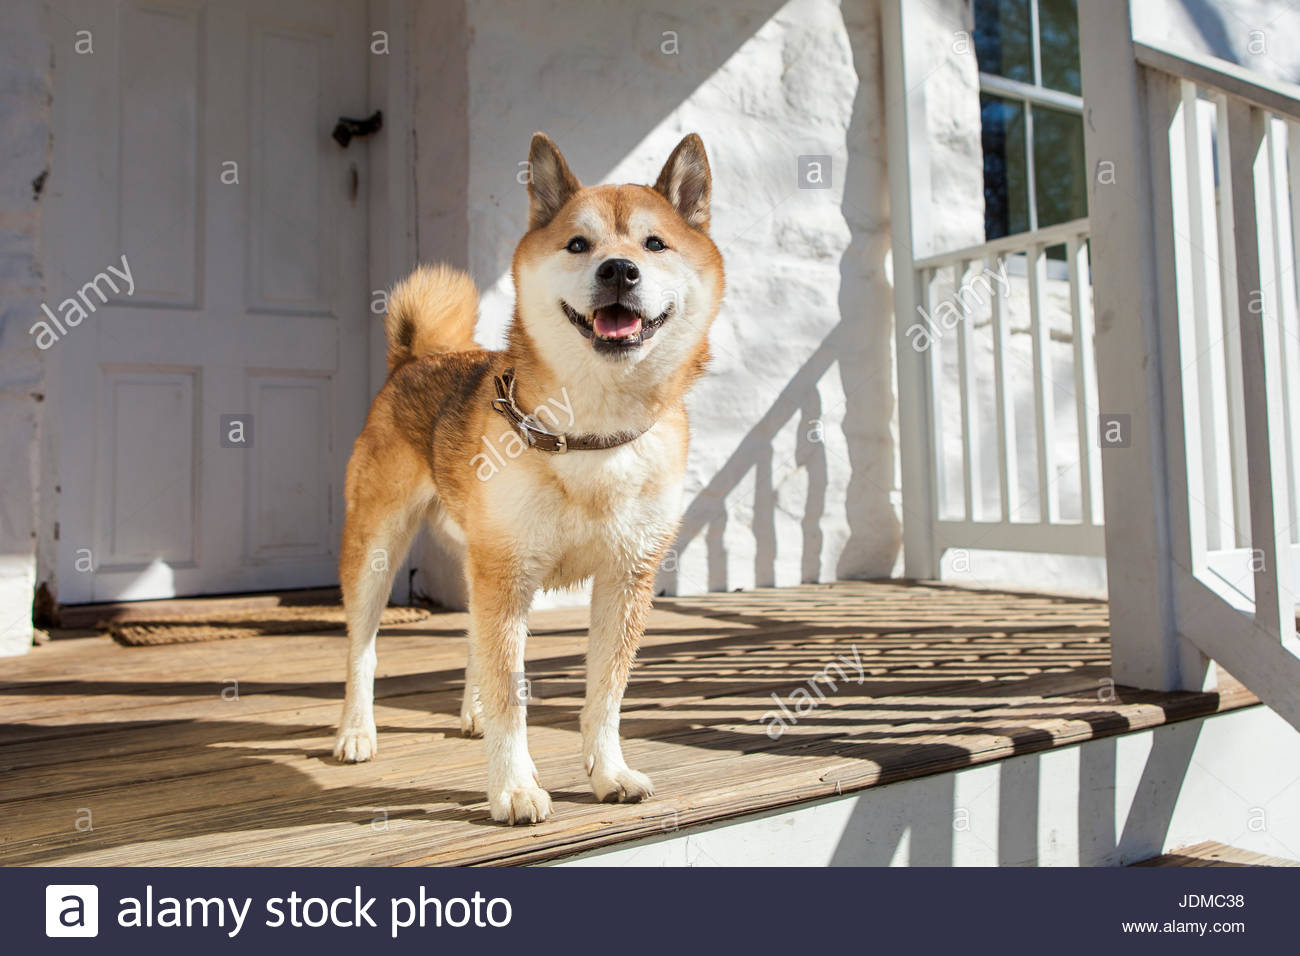 A senior Shiba Inu poses for pictures on a house porch. - Stock Image